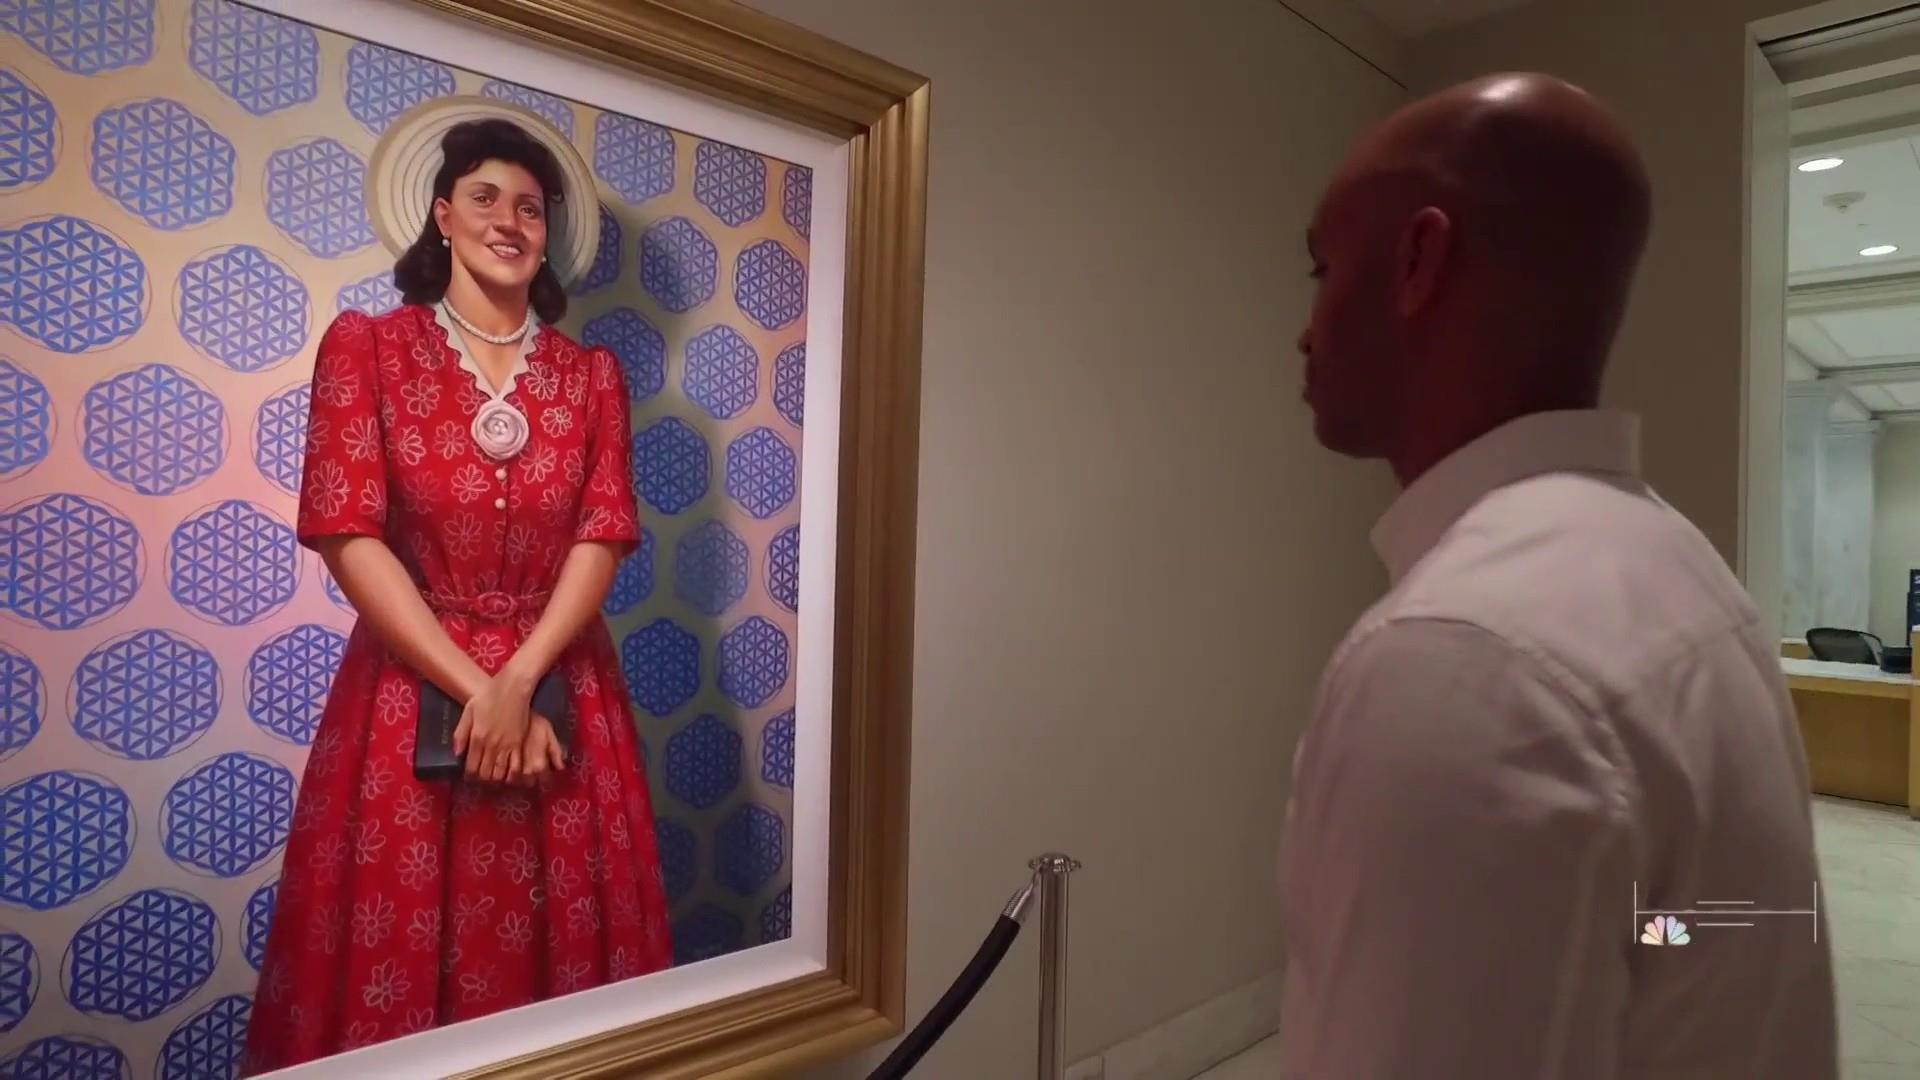 National Portrait Gallery opens its doors to diversity with Henrietta Lacks painting